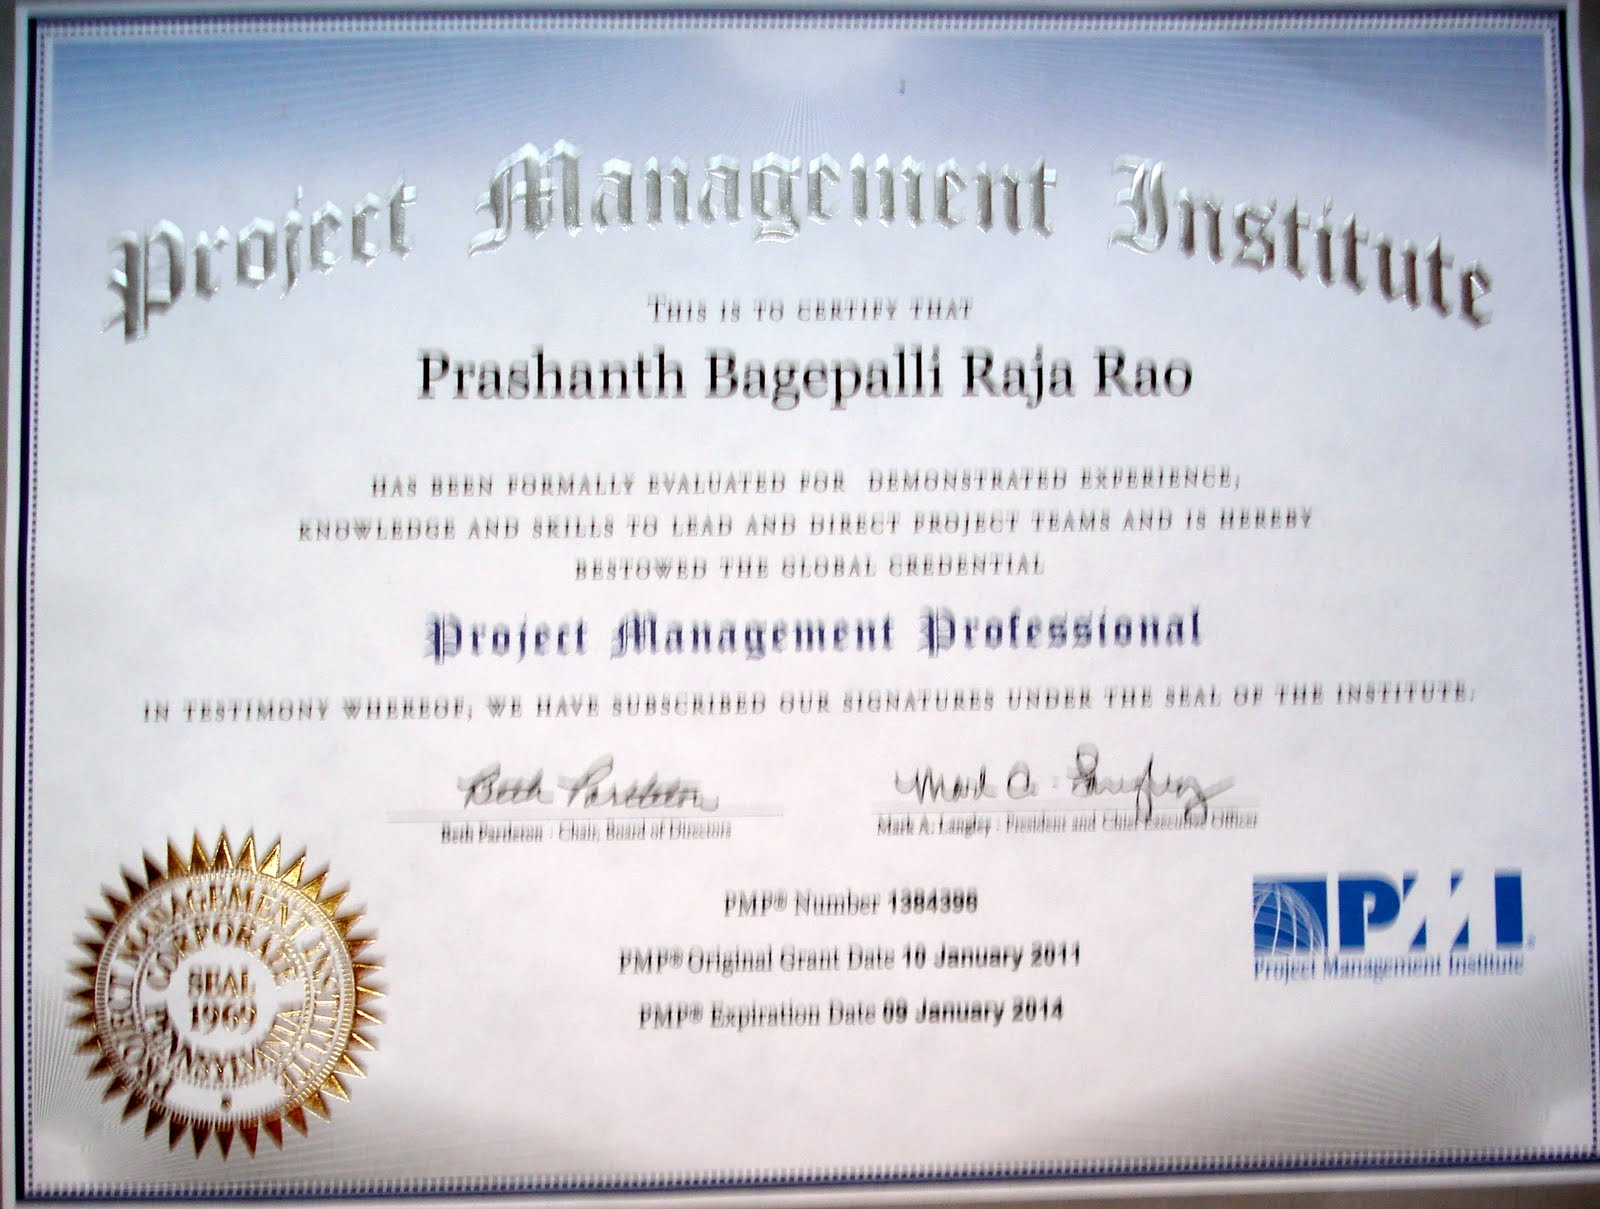 Pmp certified punarnava new again on jan 10th i passed my pmp certification exam on first attempt i started preparing in sept 2010 with the 4 day mandatory course at pmi 1betcityfo Gallery